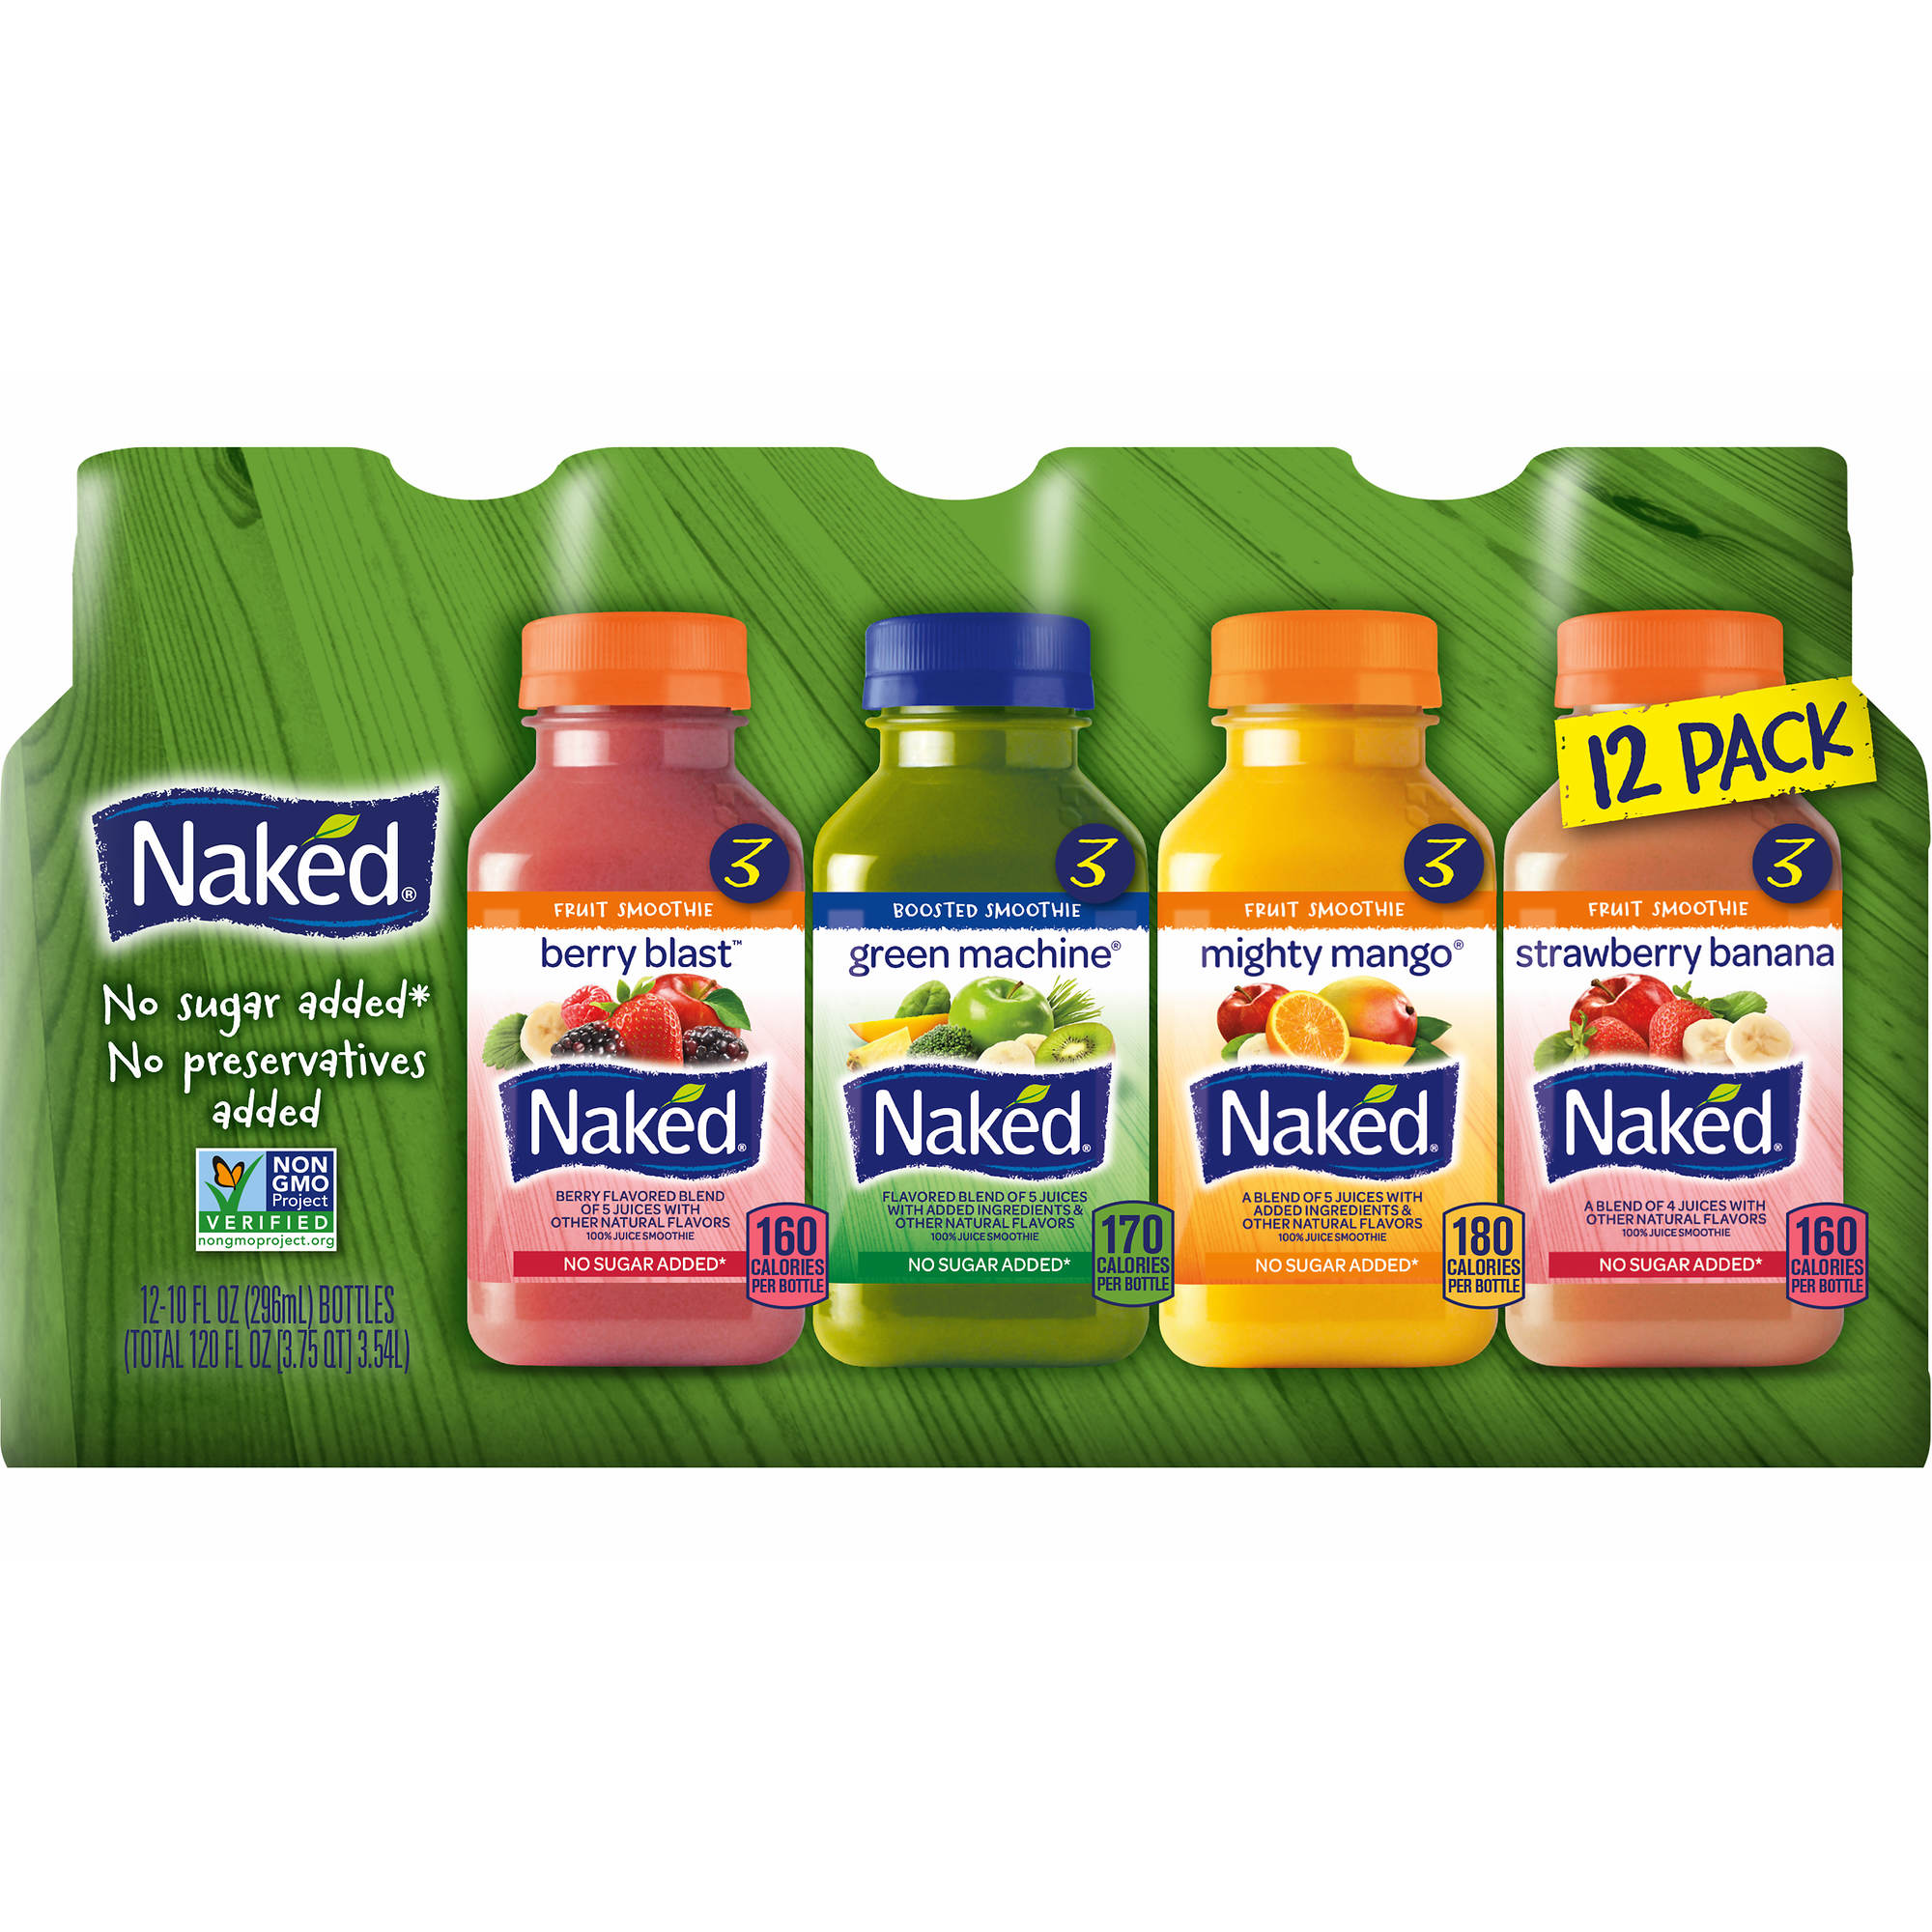 Boxed.com : Naked Juice Smoothies 12 x 10 oz. - Variety Pack